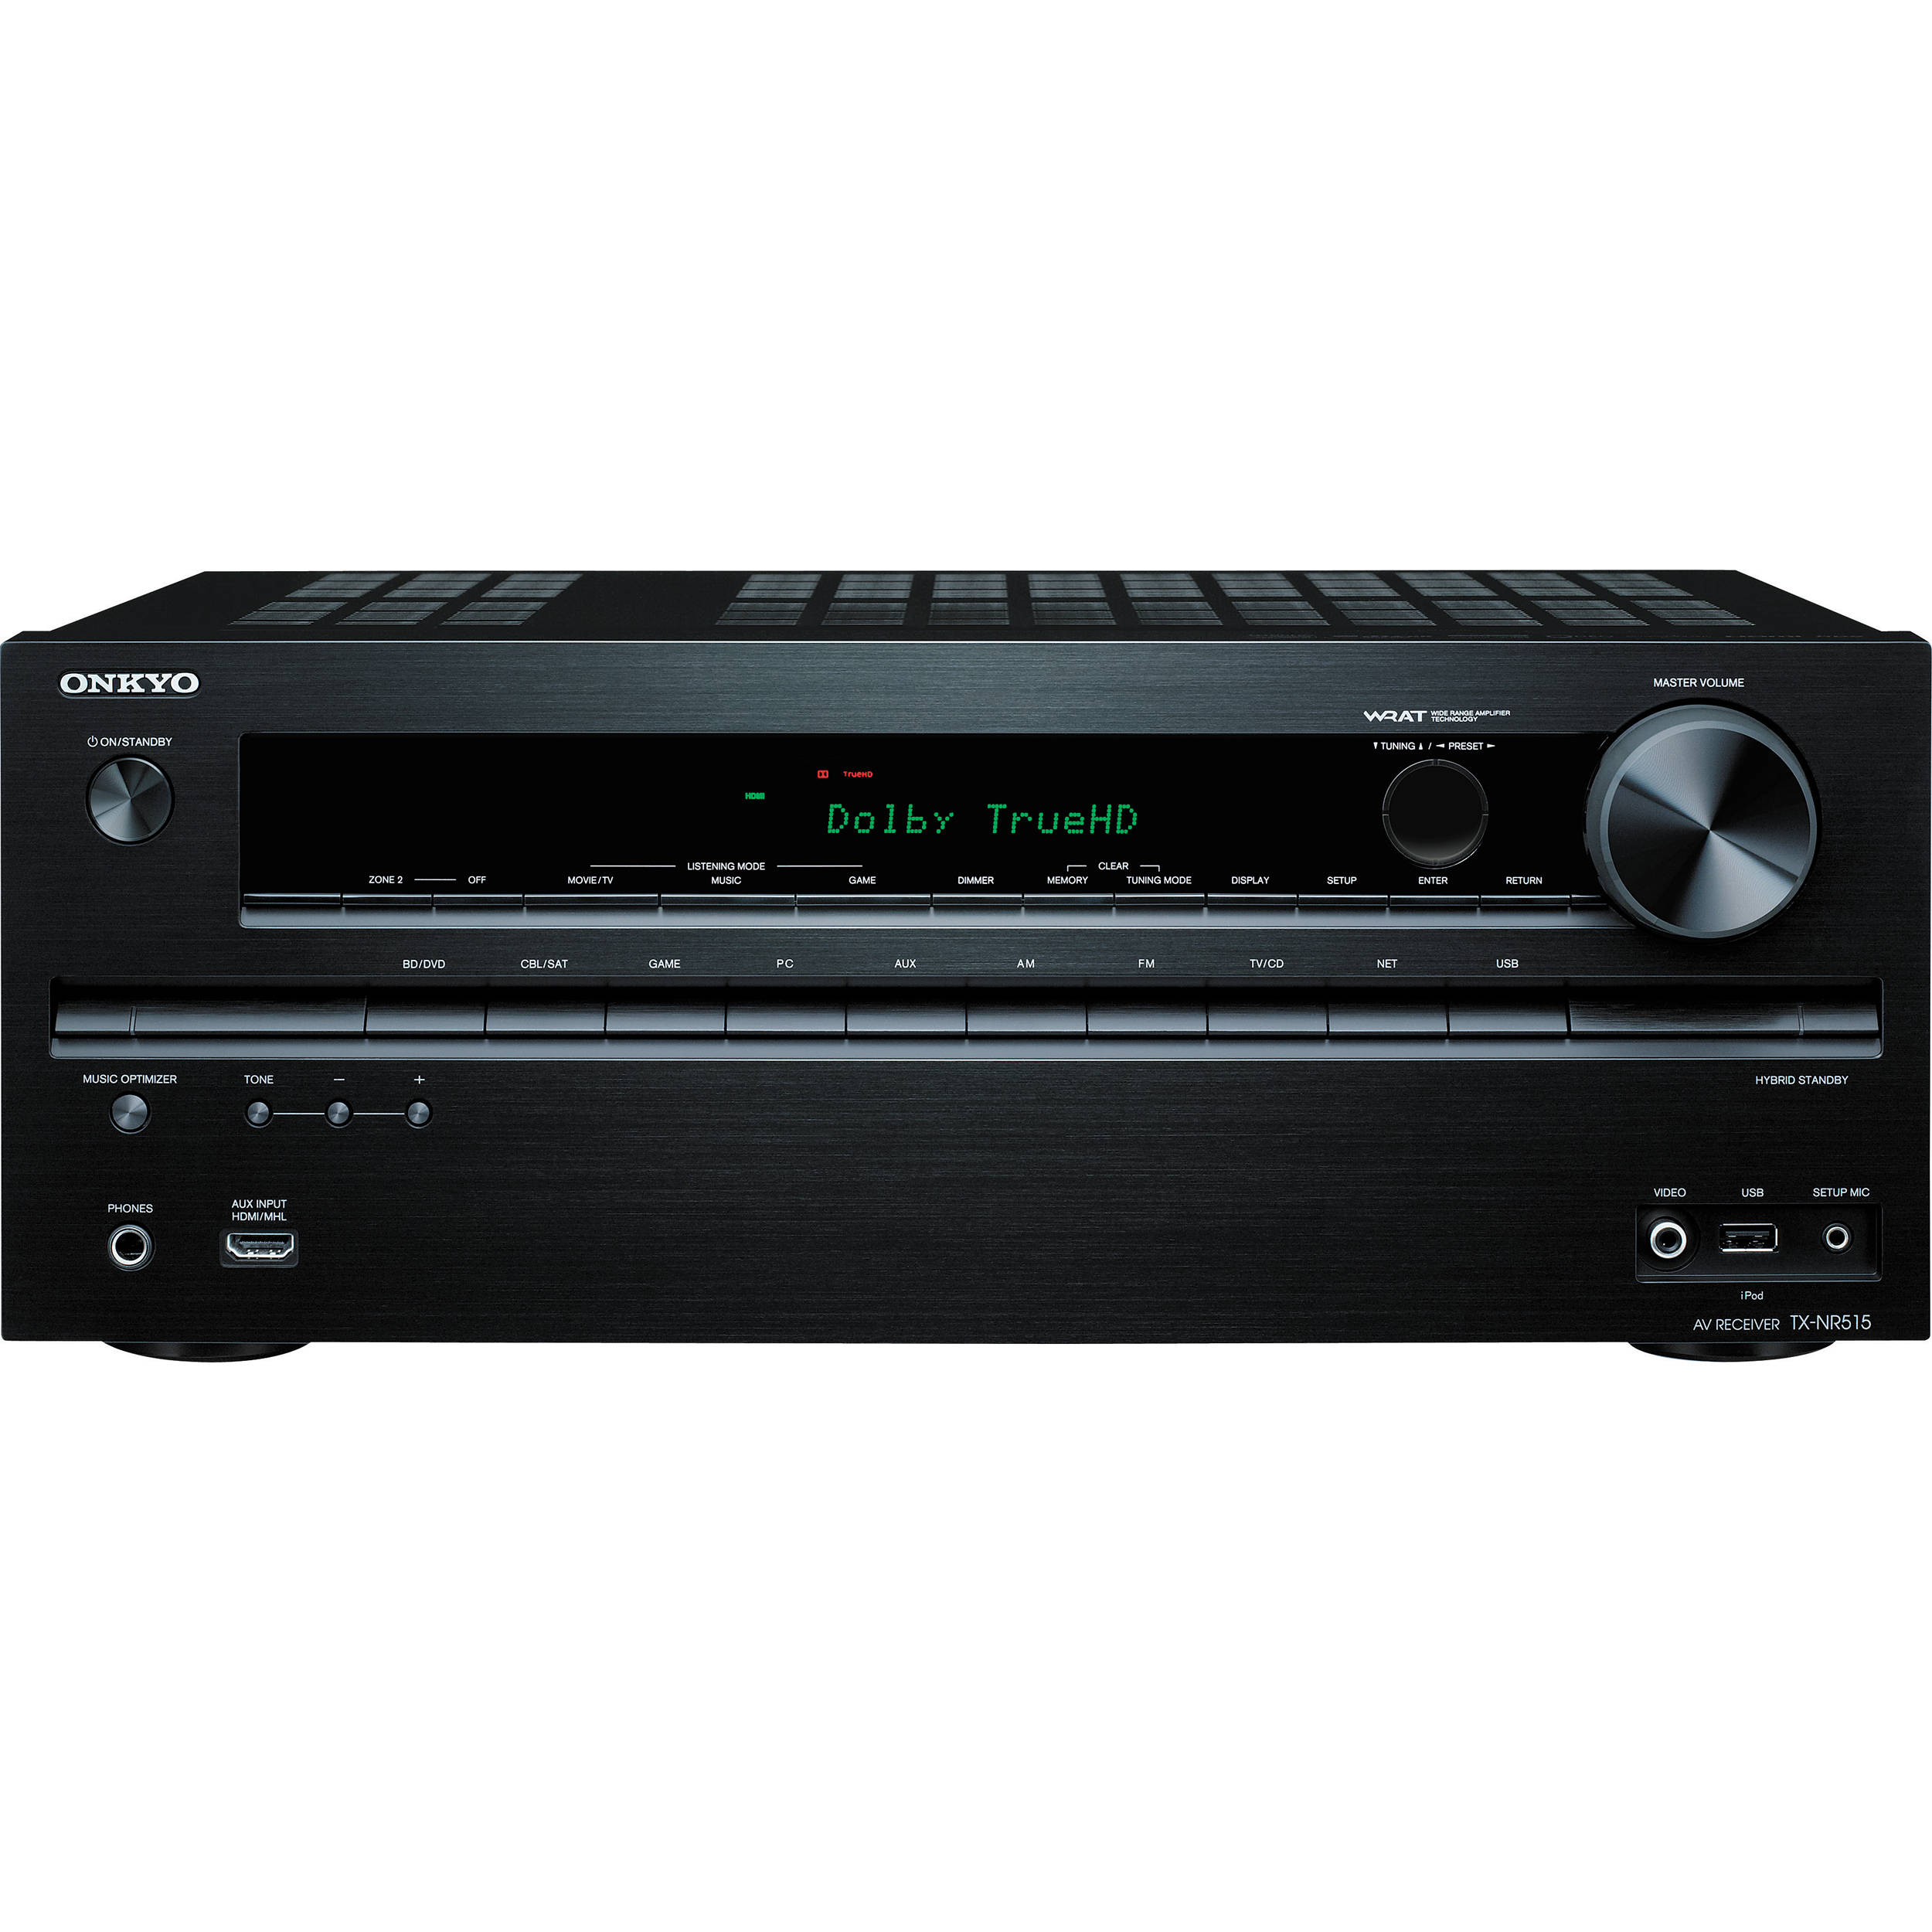 Onkyo TXNR AV Home Theater Receiver TXNR BH Photo - Small home theater receiver